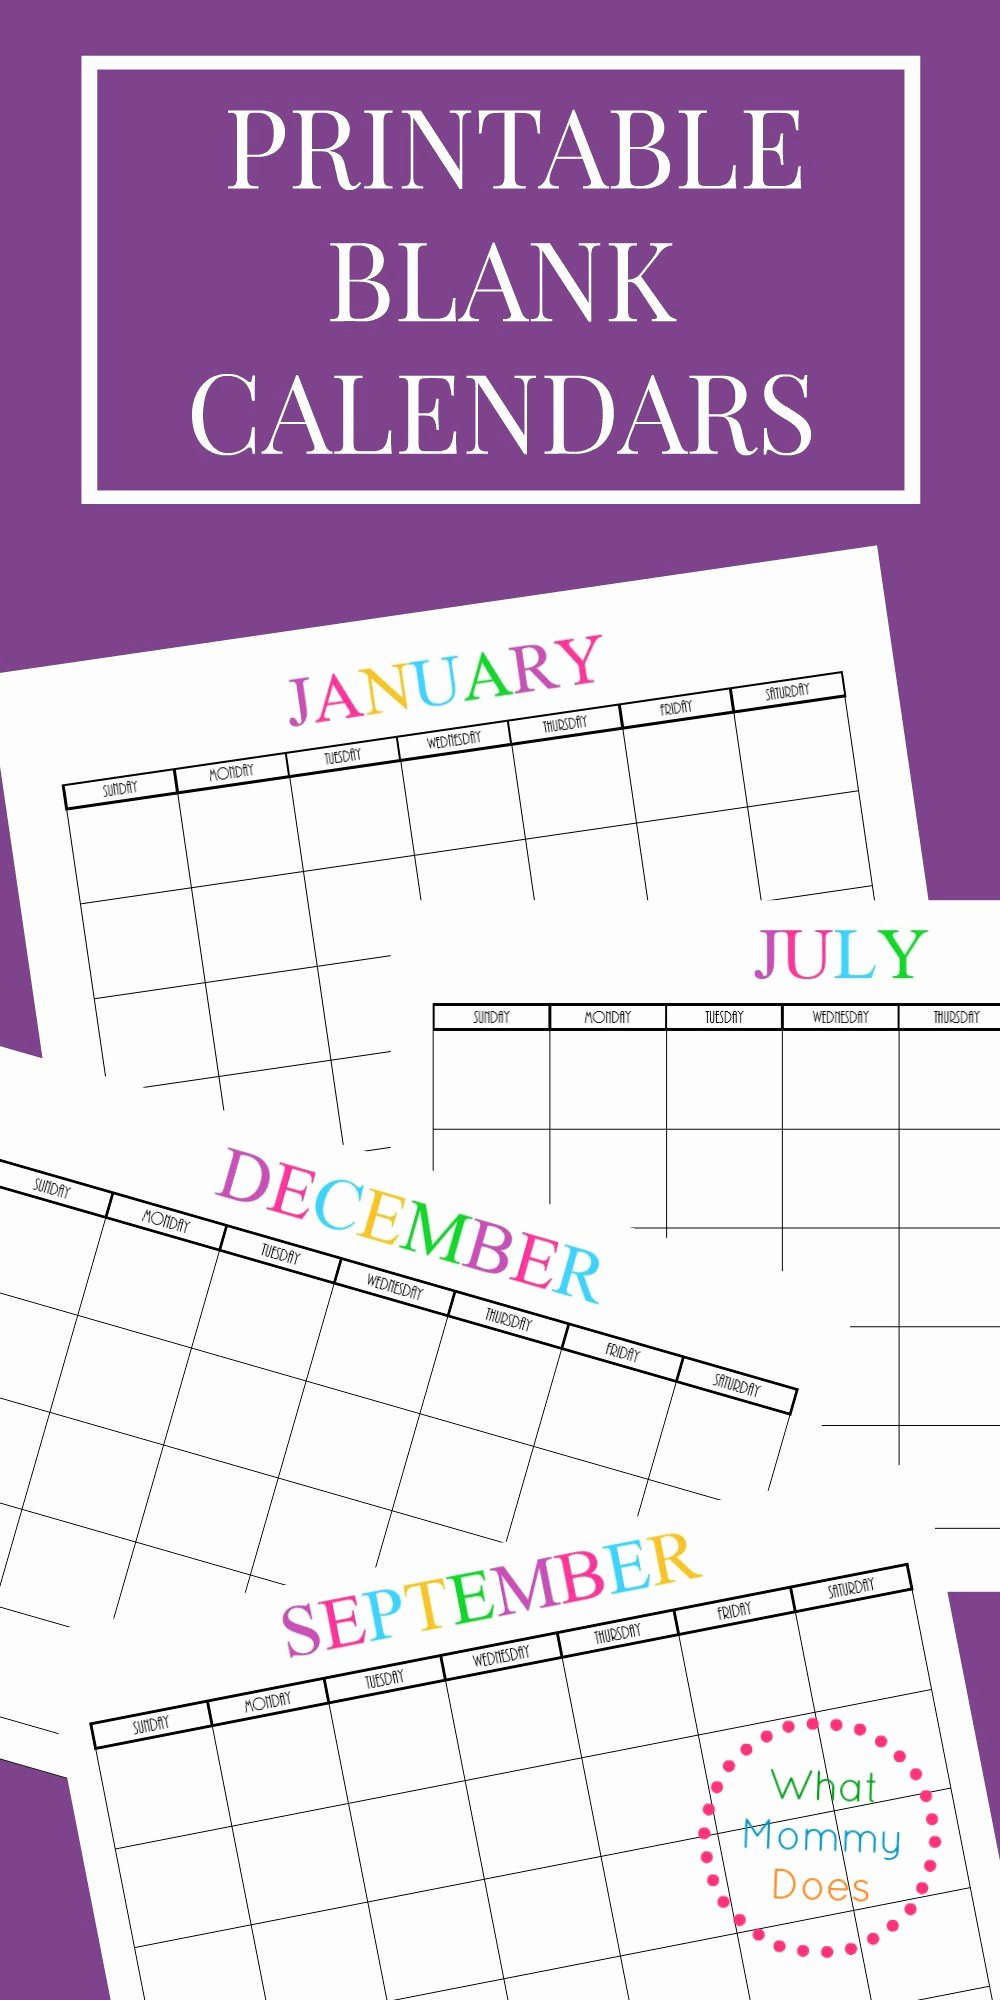 Printable Blank Weekly Calendar Beautiful Free Printable Blank Monthly Calendars 2018 2019 2020